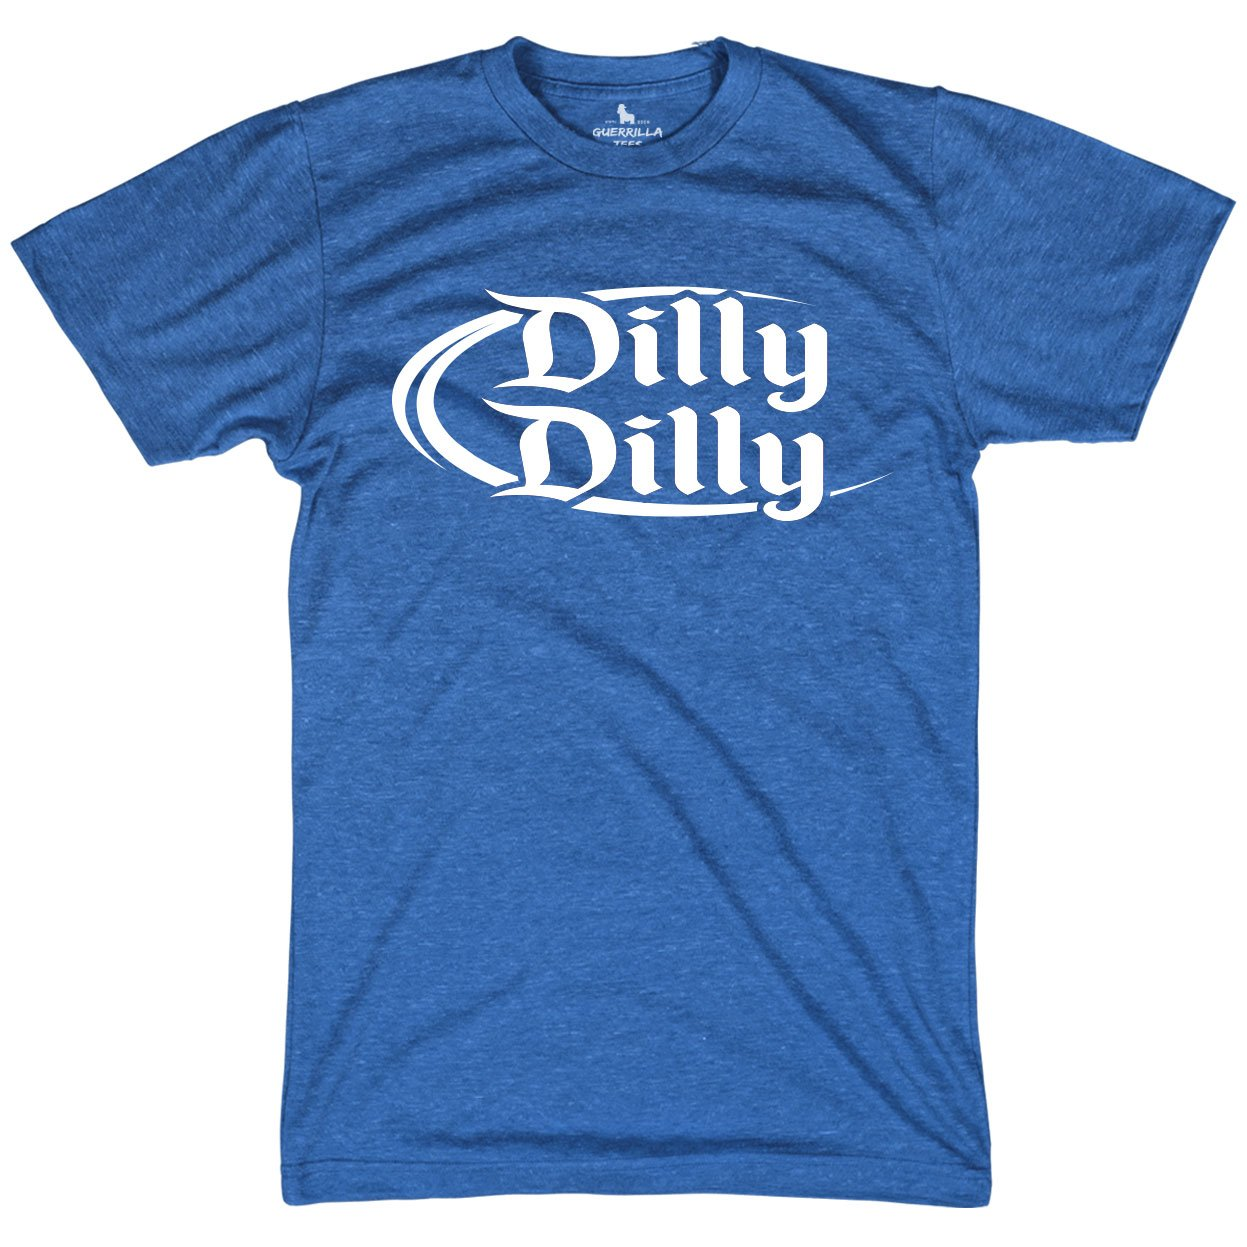 Dilly Dilly!